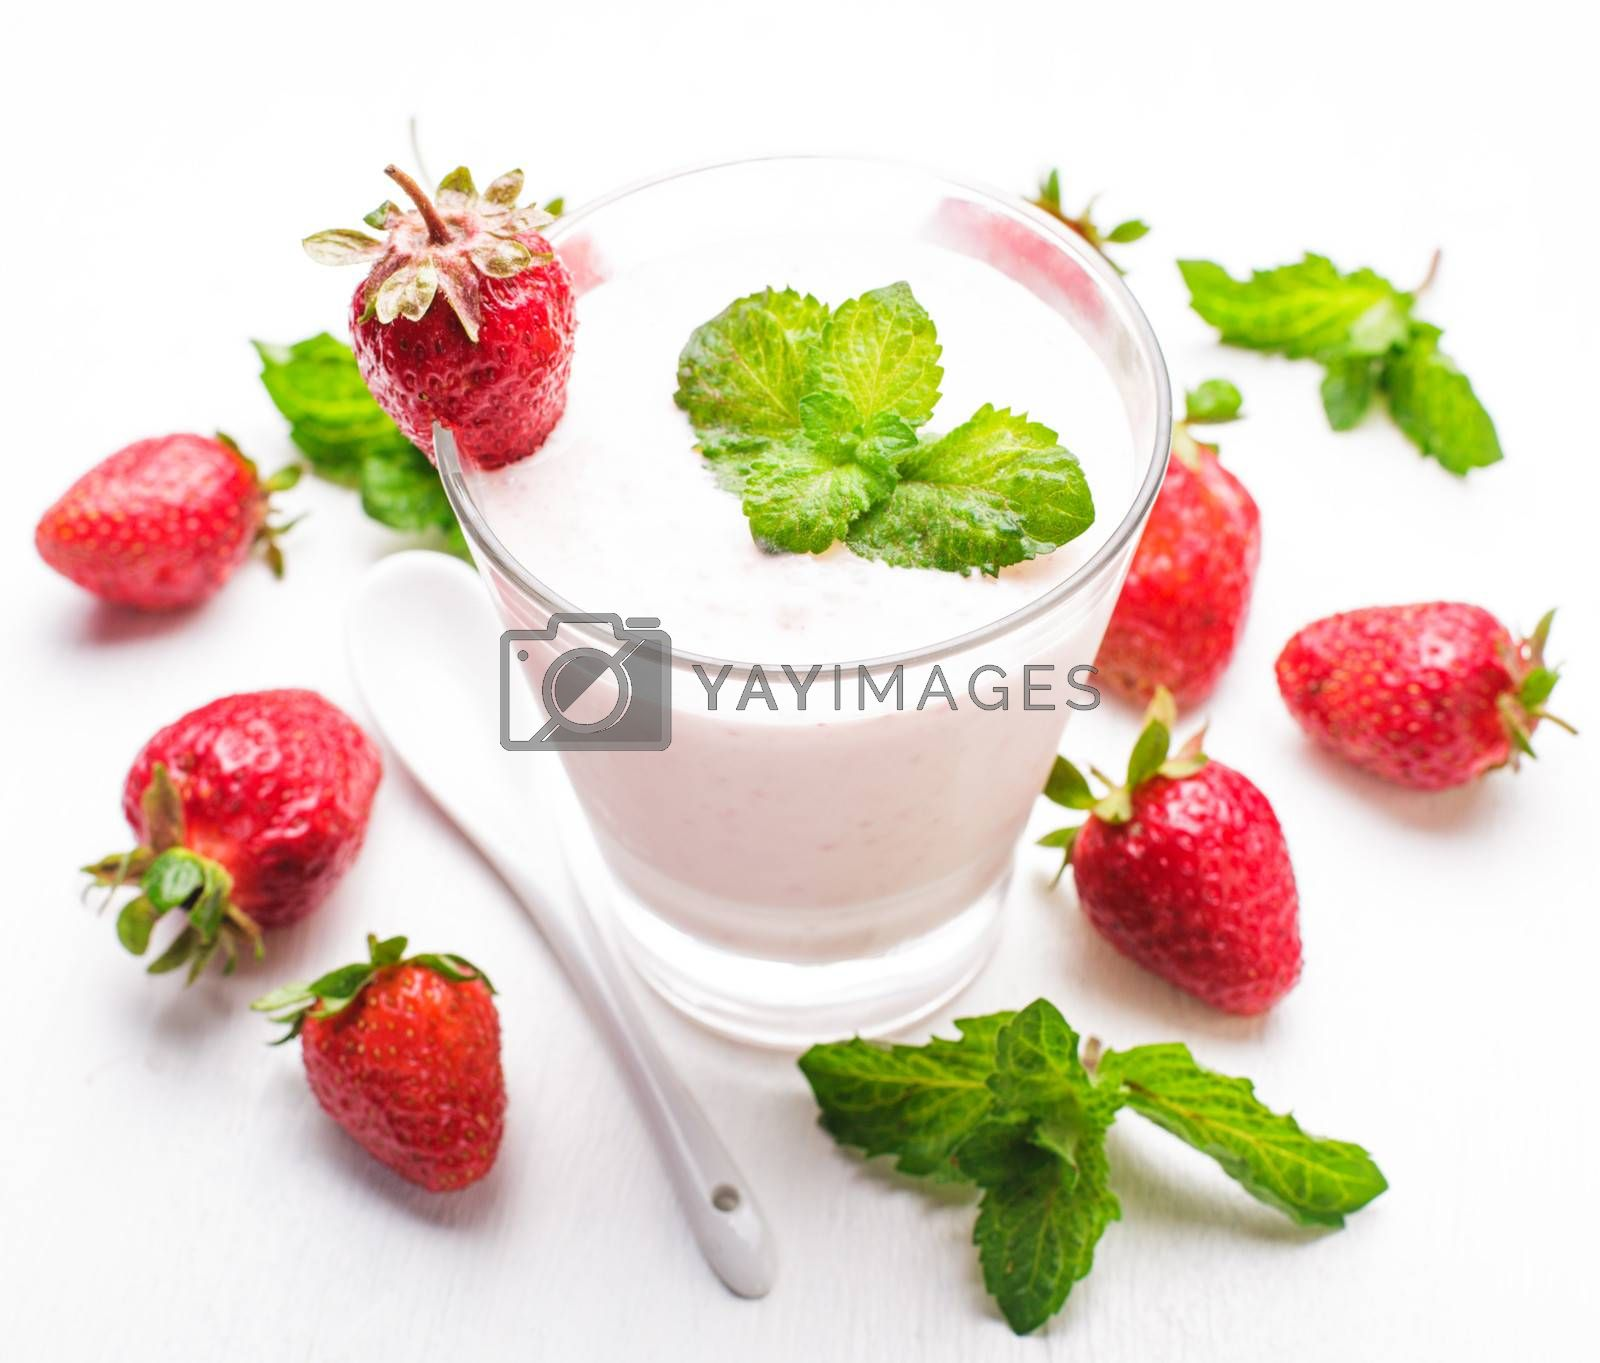 Strawberry yoghurt in glass on the white table